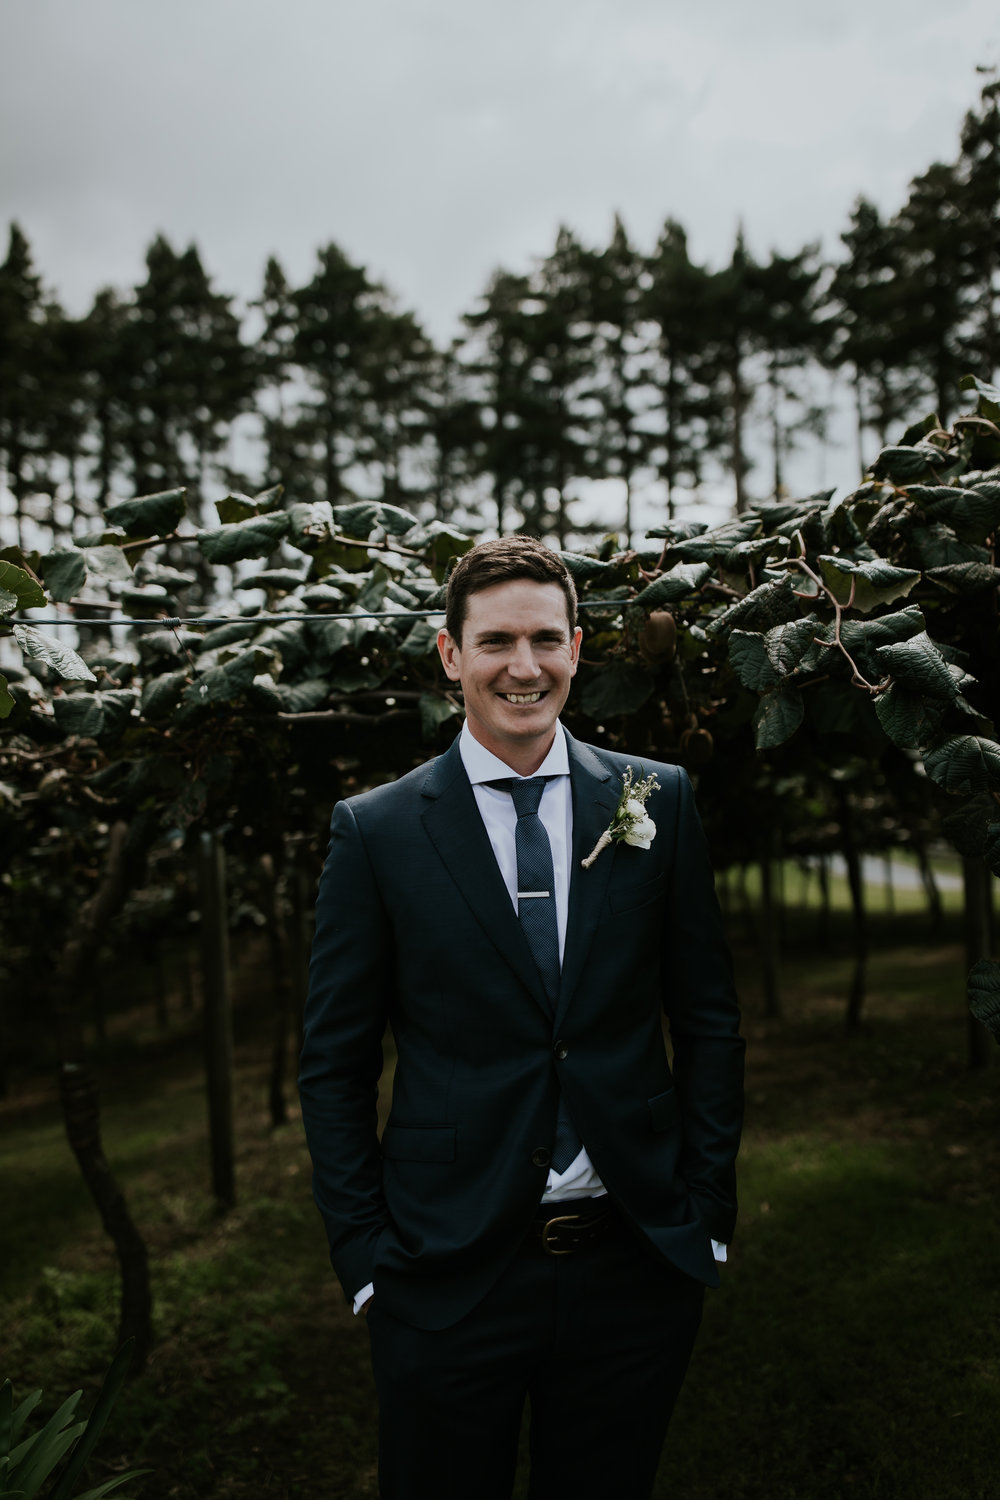 Portrait of the groom standing in front of kiwi orchard before his wedding day